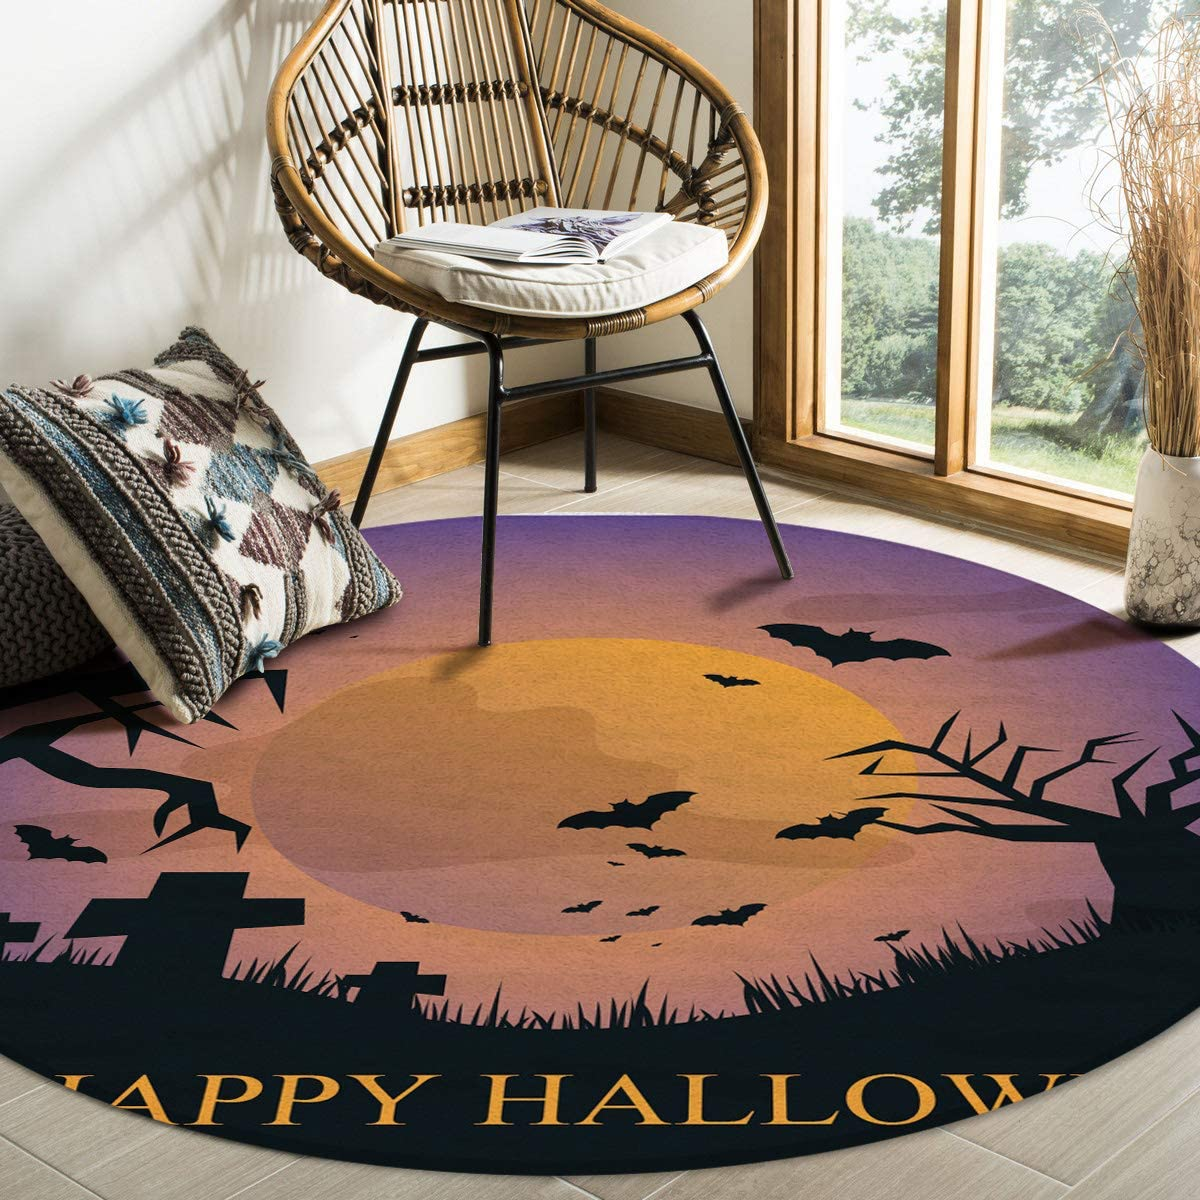 Modern Round Area Rug 6 for Bedroom Feet Low-Profi Non-Shedding Over item Challenge the lowest price of Japan handling ☆